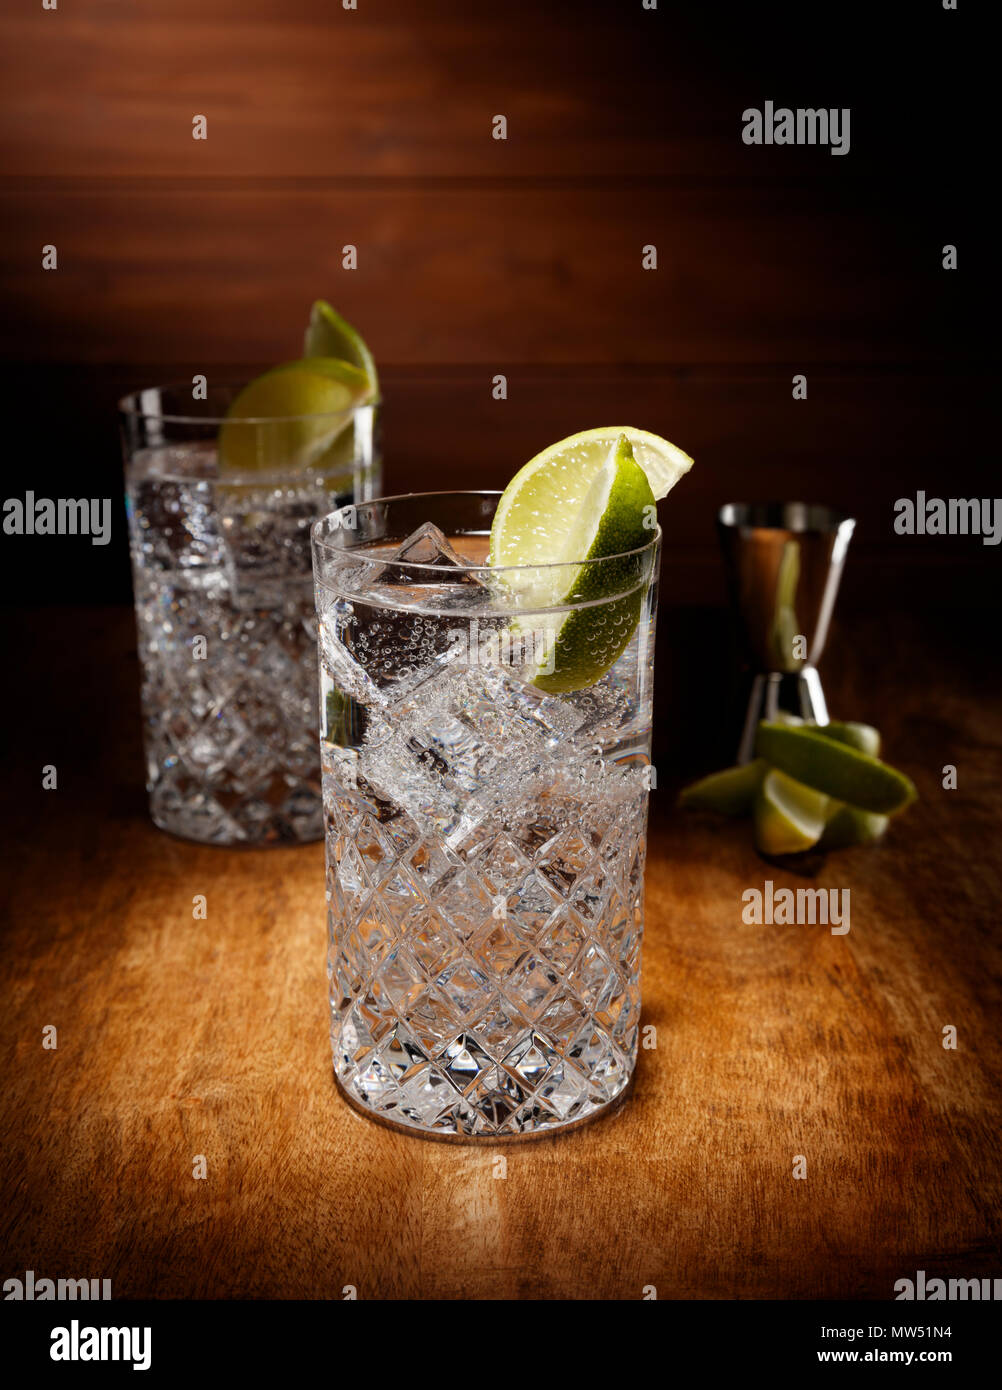 Spotlight on two crystal glasses full of the Gin and tonic cocktail, with a lime garnish, shot on a antique wooden table top. - Stock Image